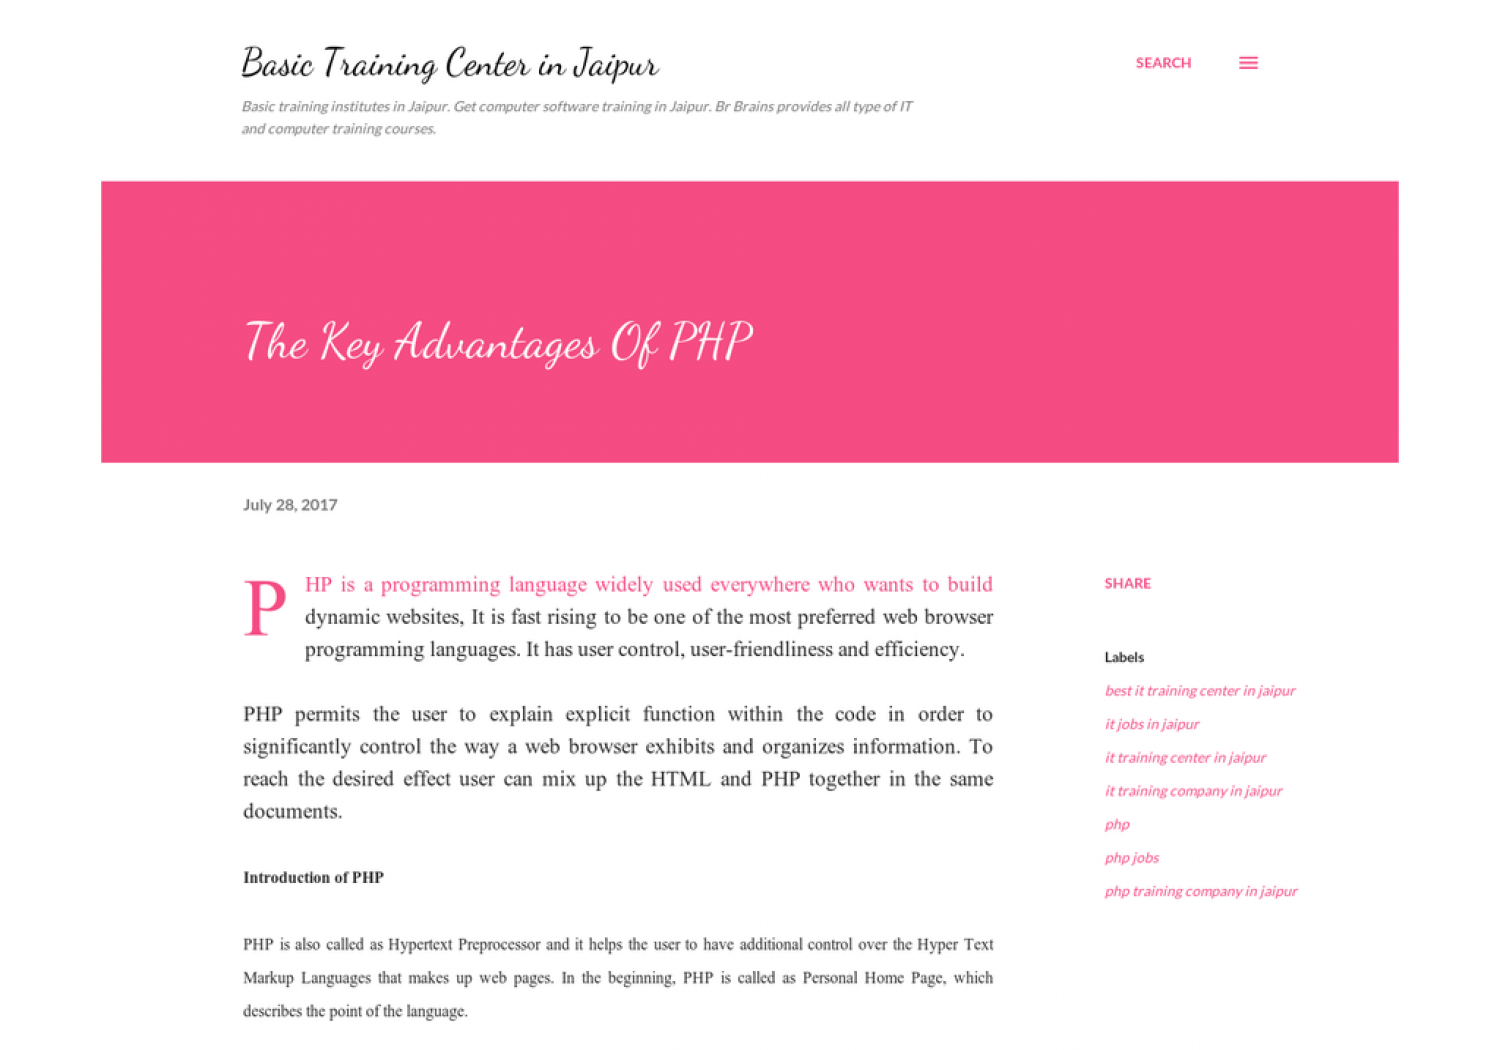 The Key Advantages Of PHP Infographic